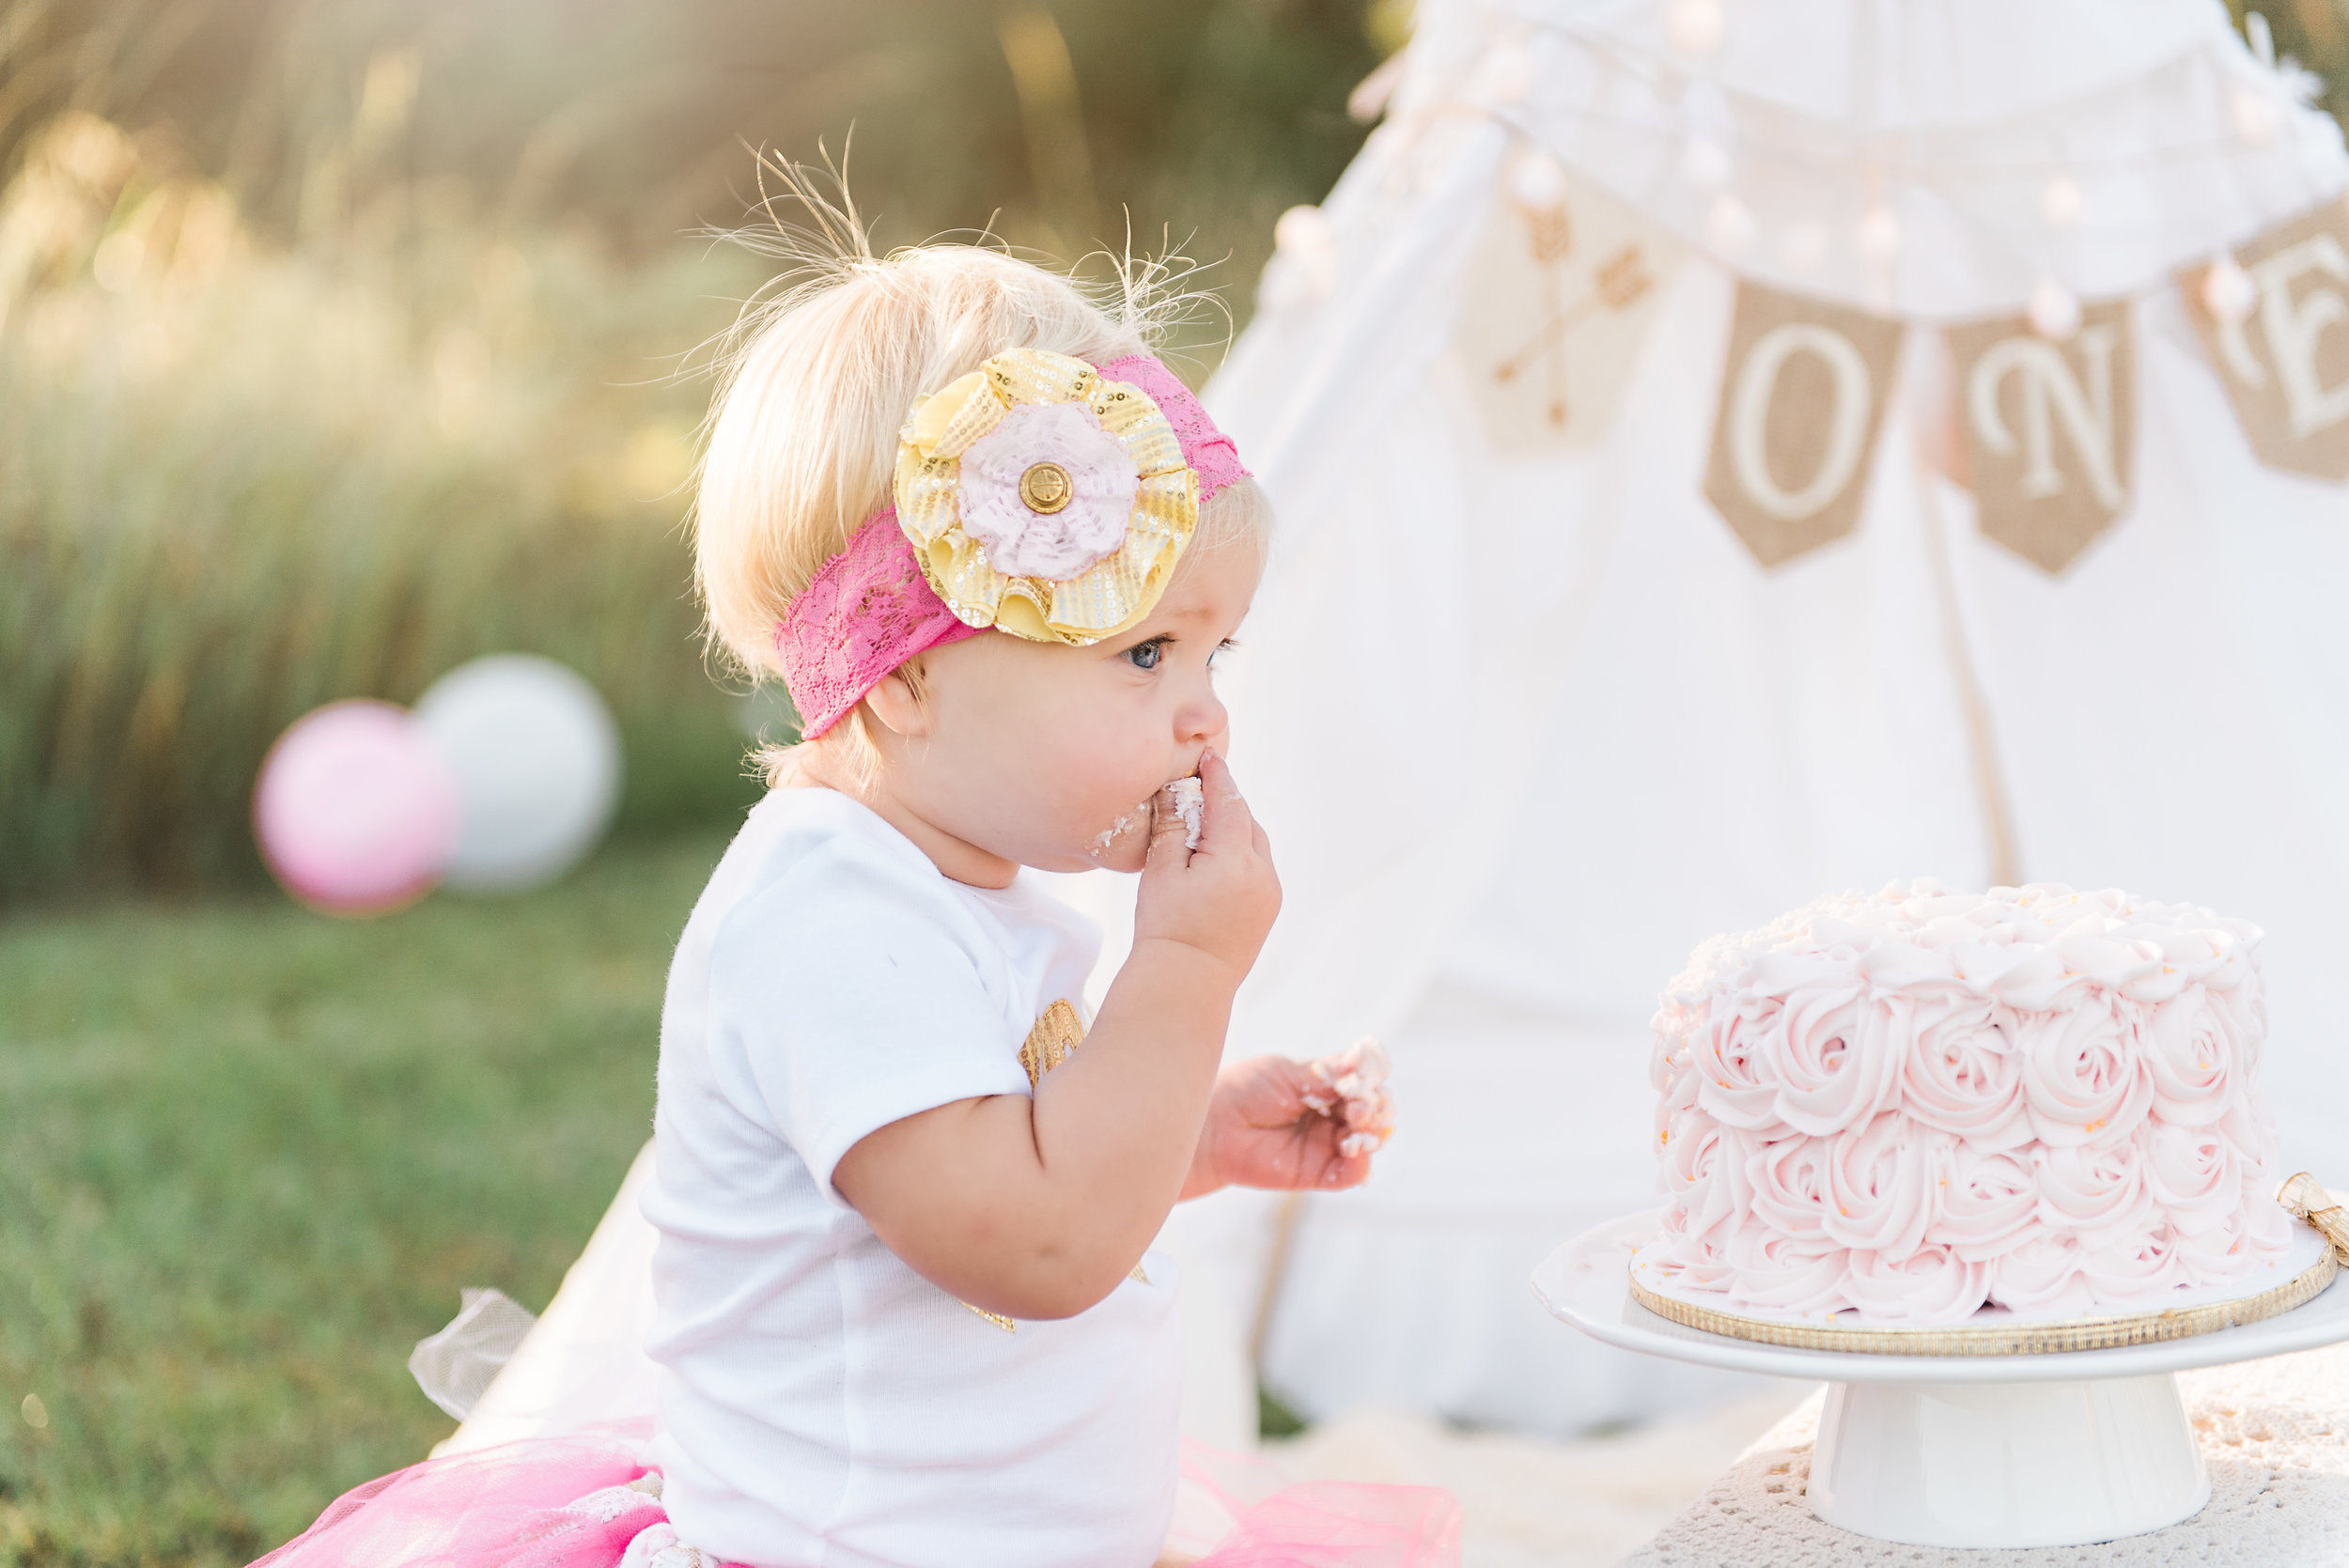 cakesmash-richmond-hill-ga-children-photography